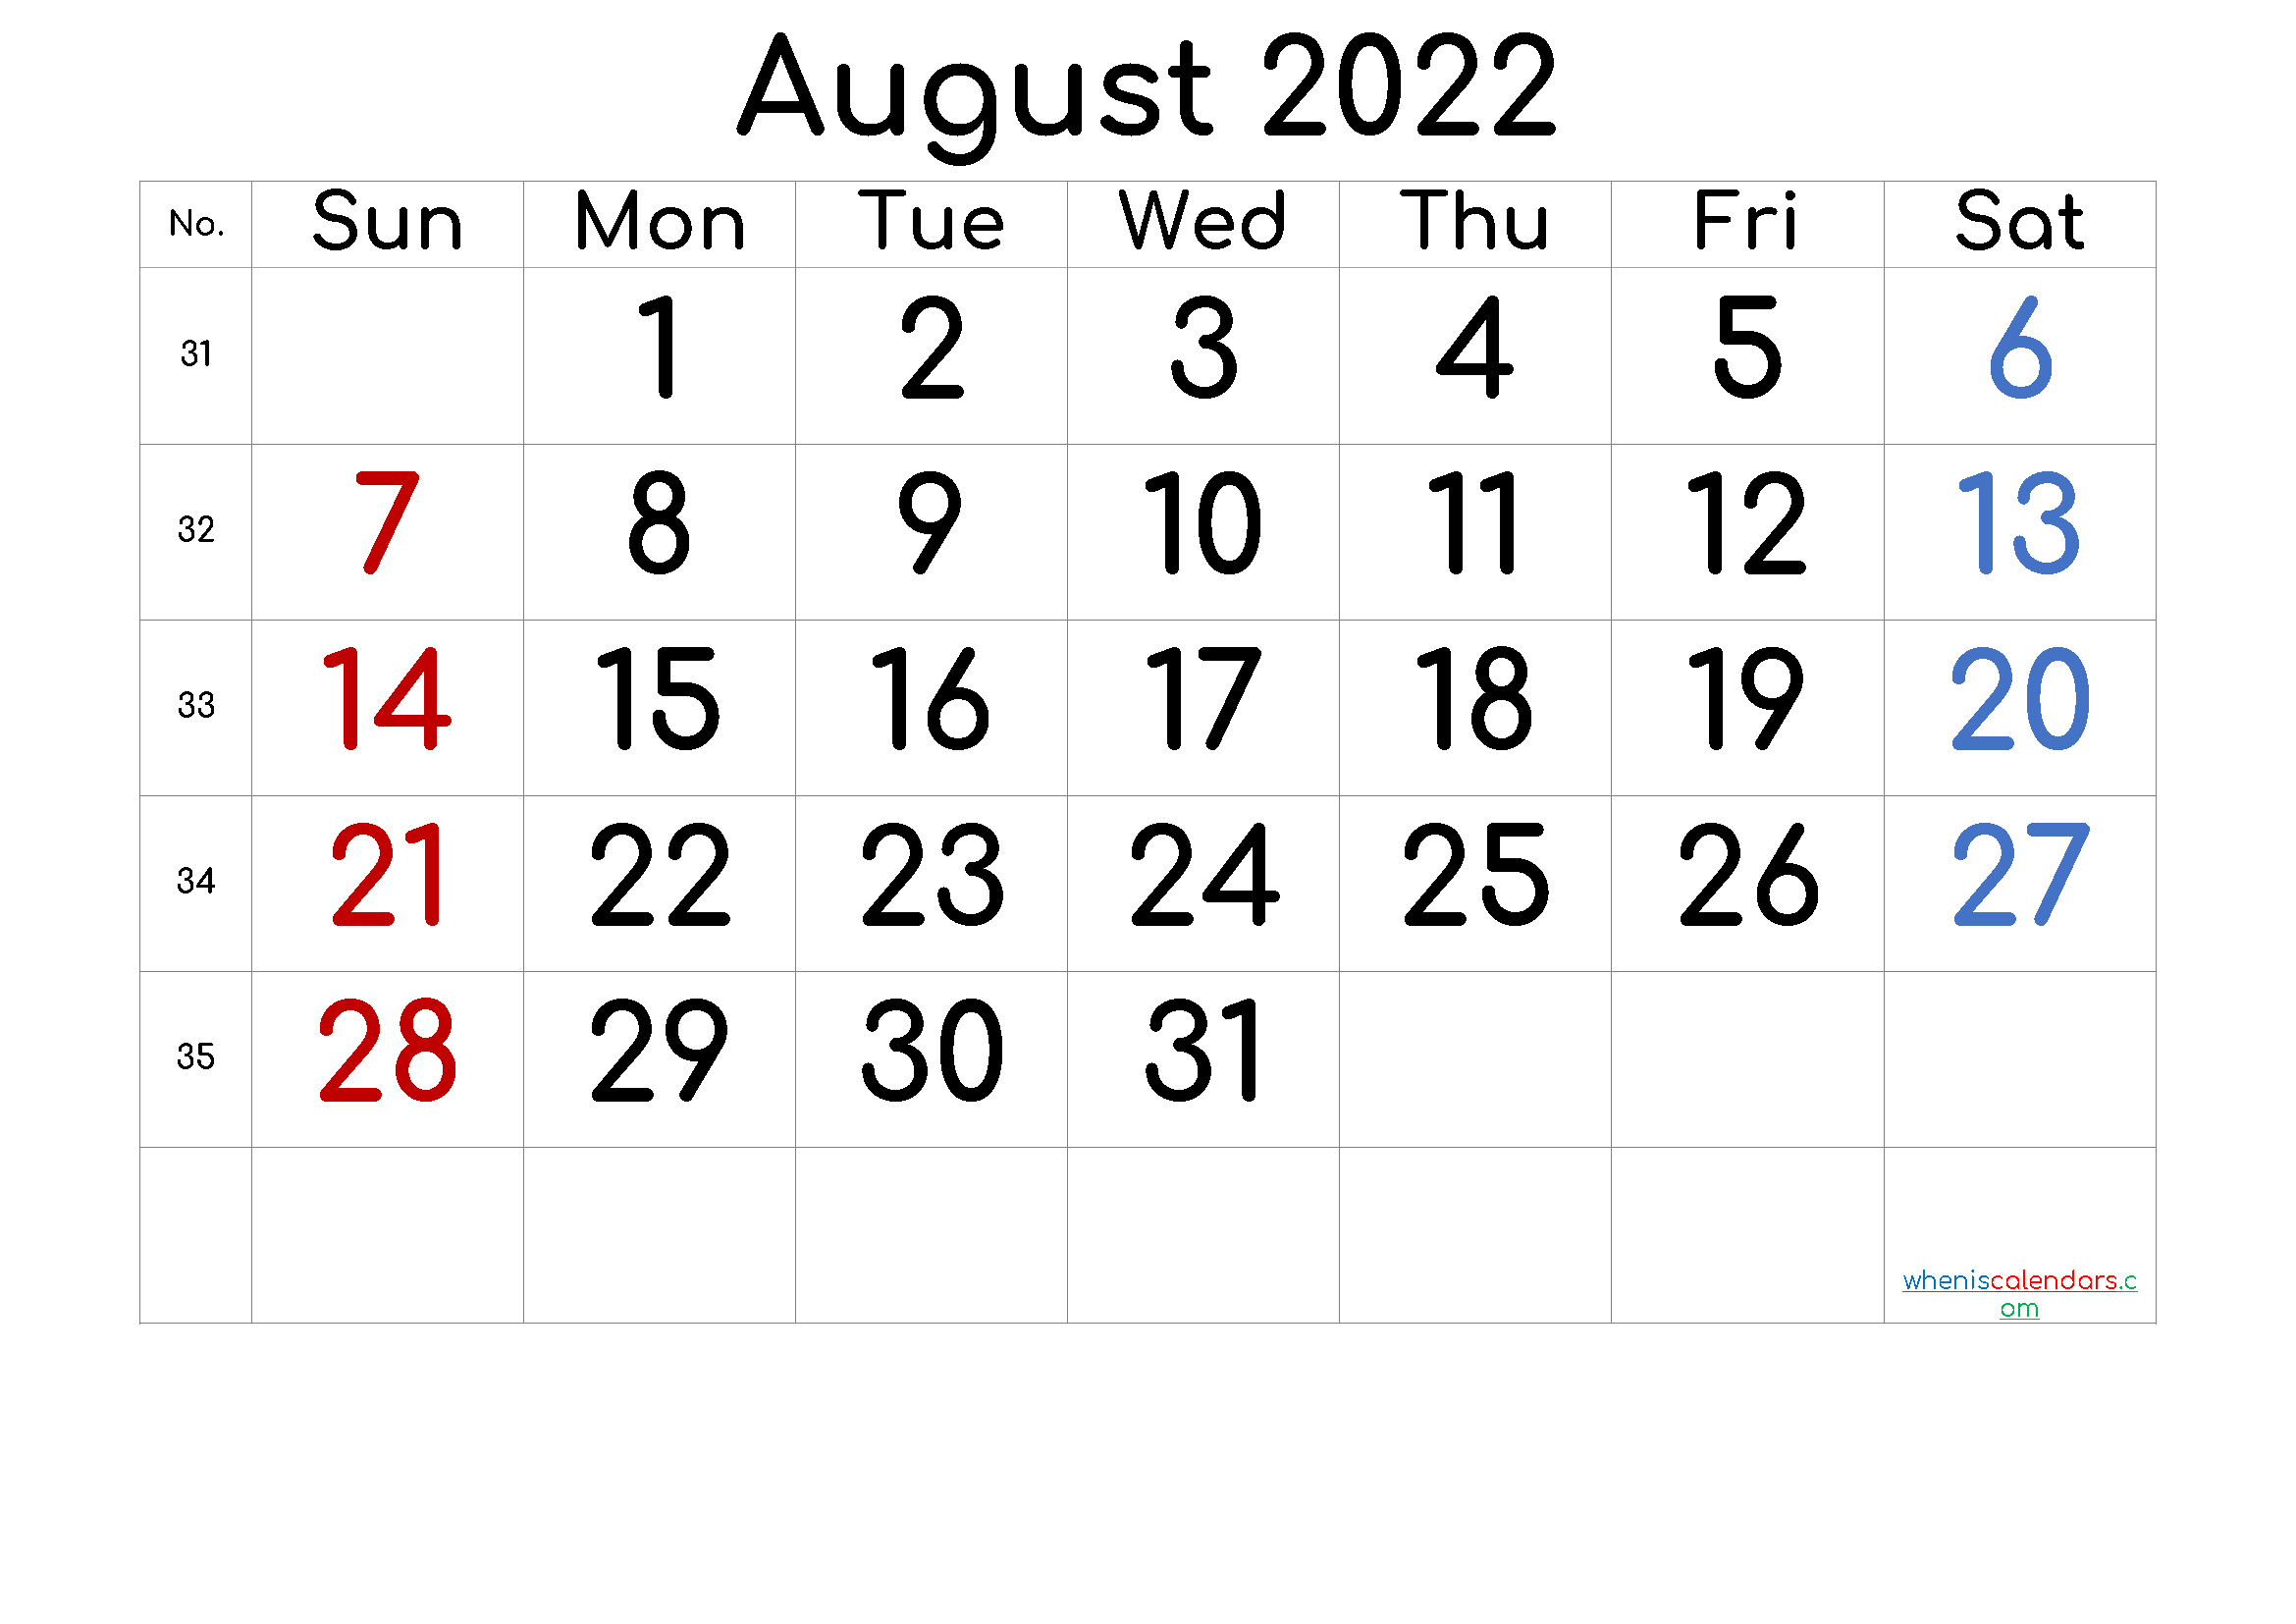 Free Printable 2022 August Calendar intended for Printable 2022 August Calendar Photo